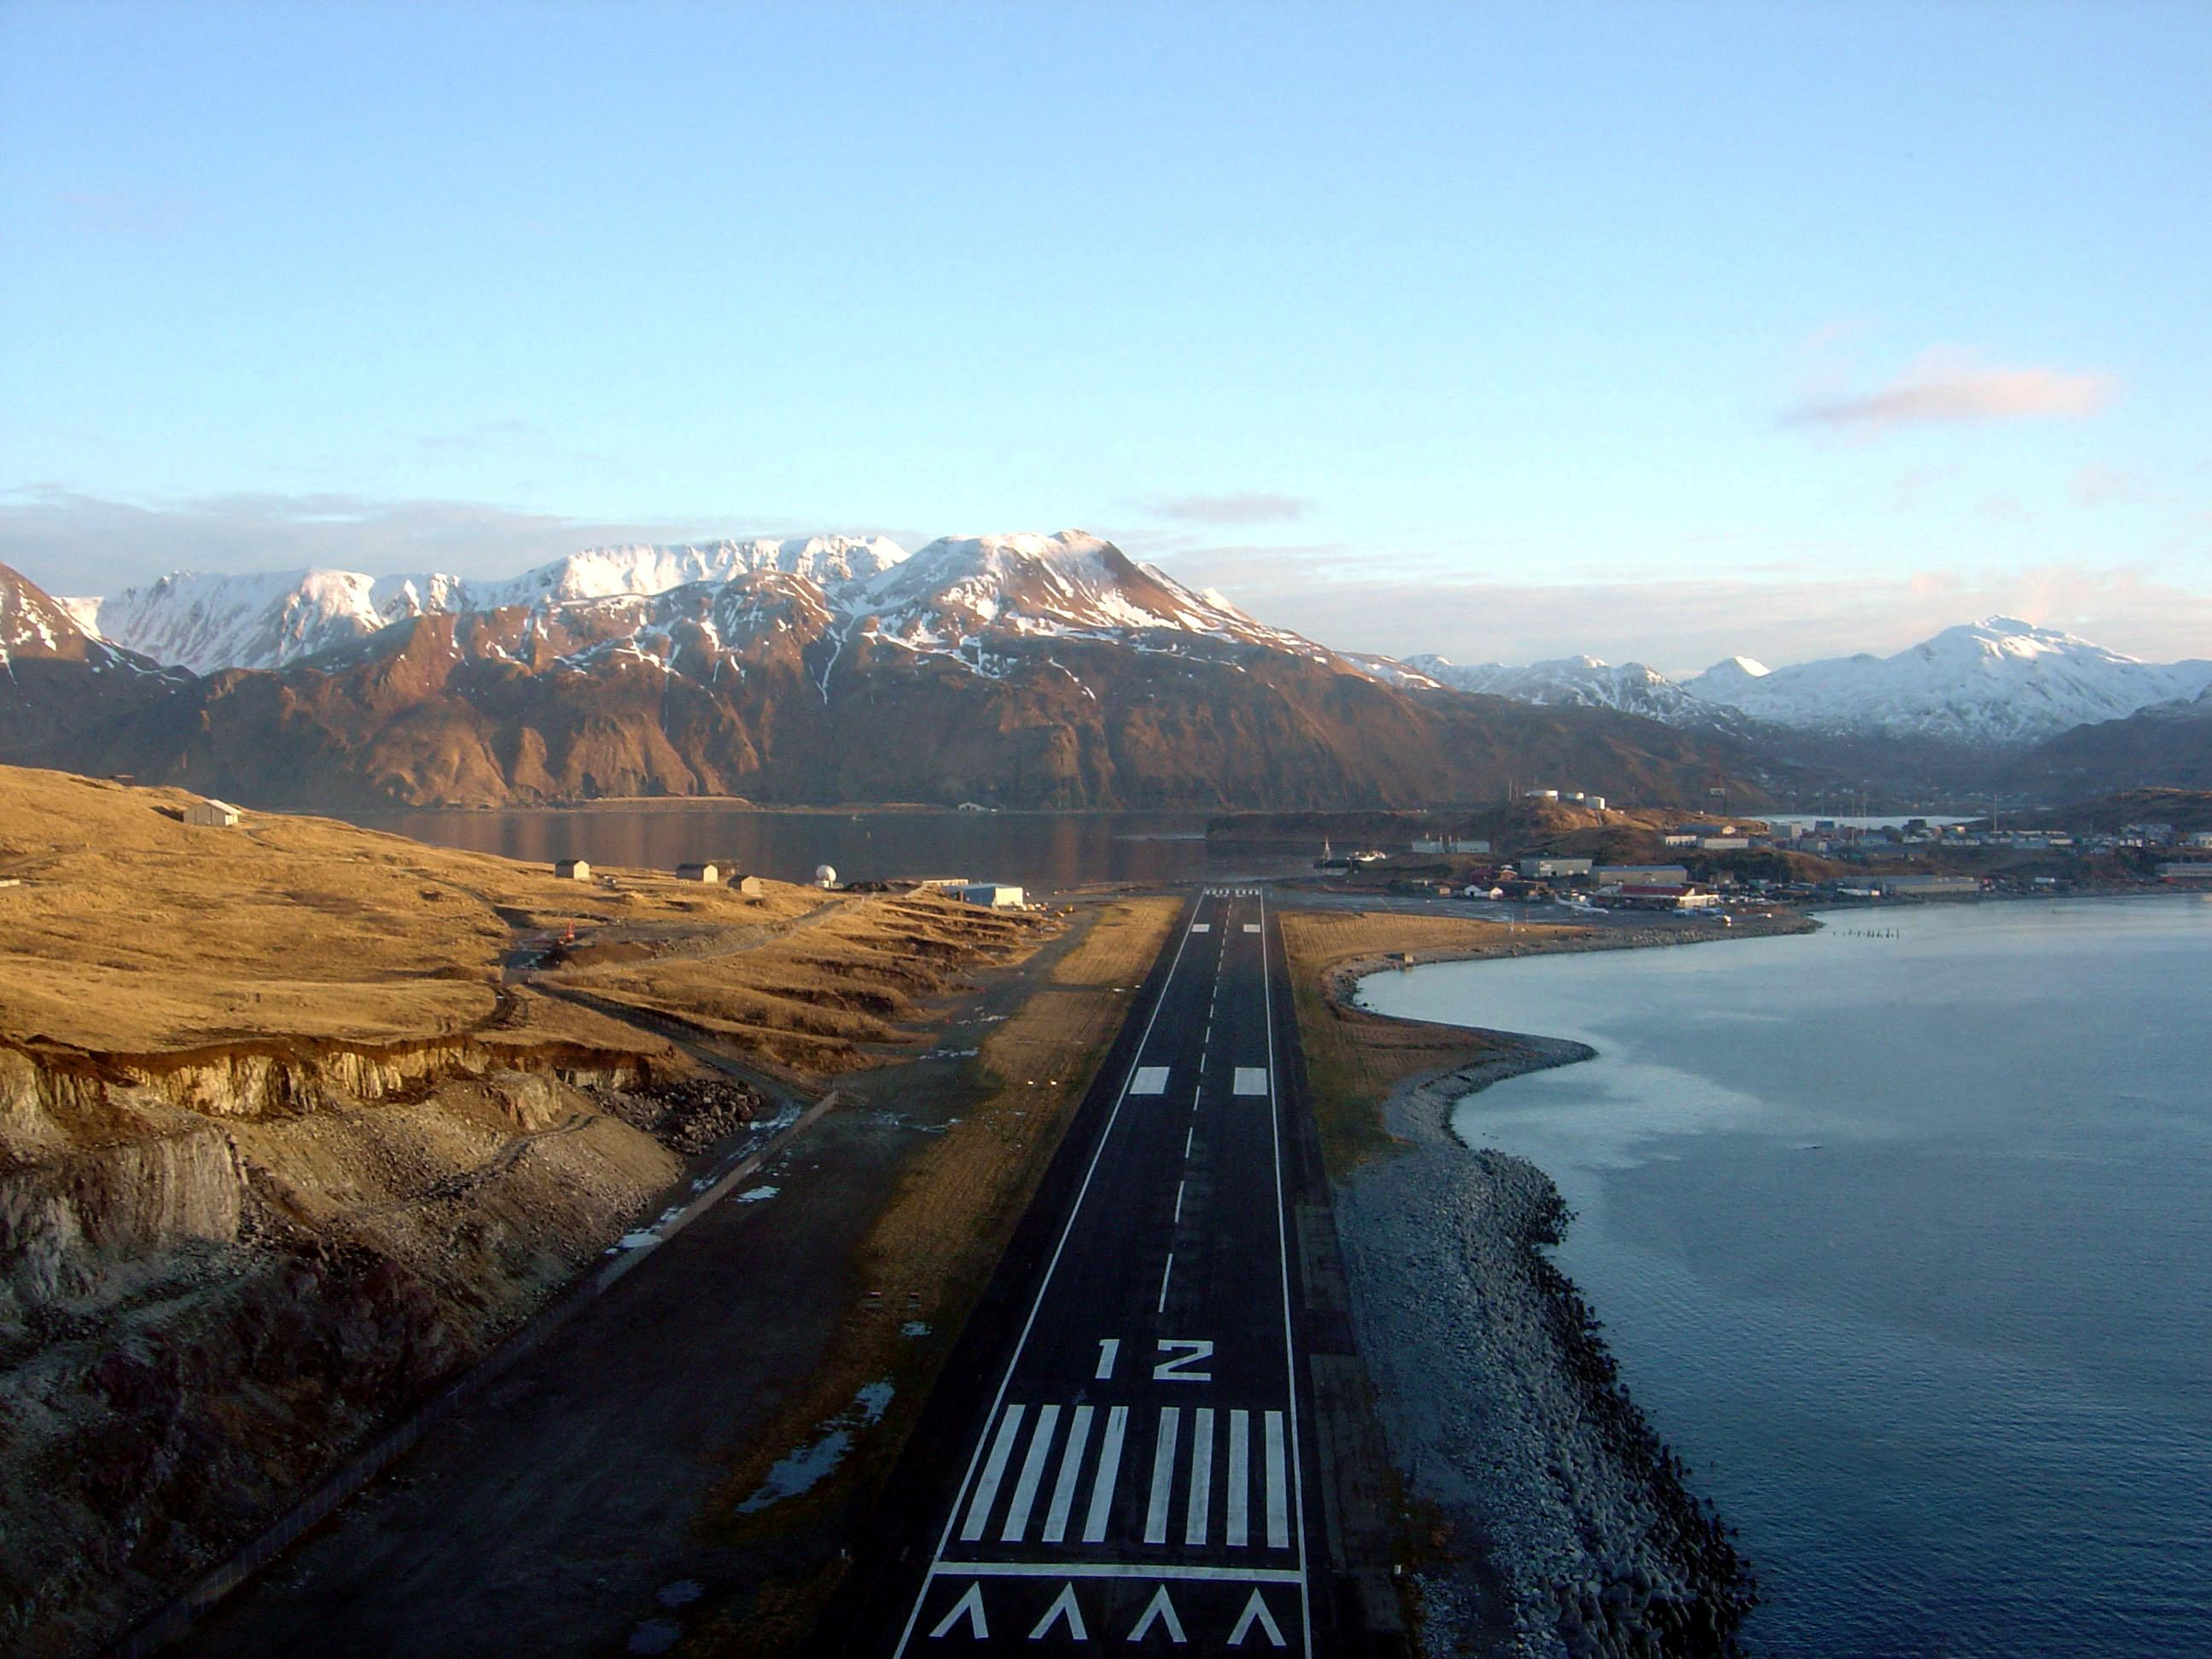 dutch-harbor-ak-runway-doug-helton-noaa.jpg